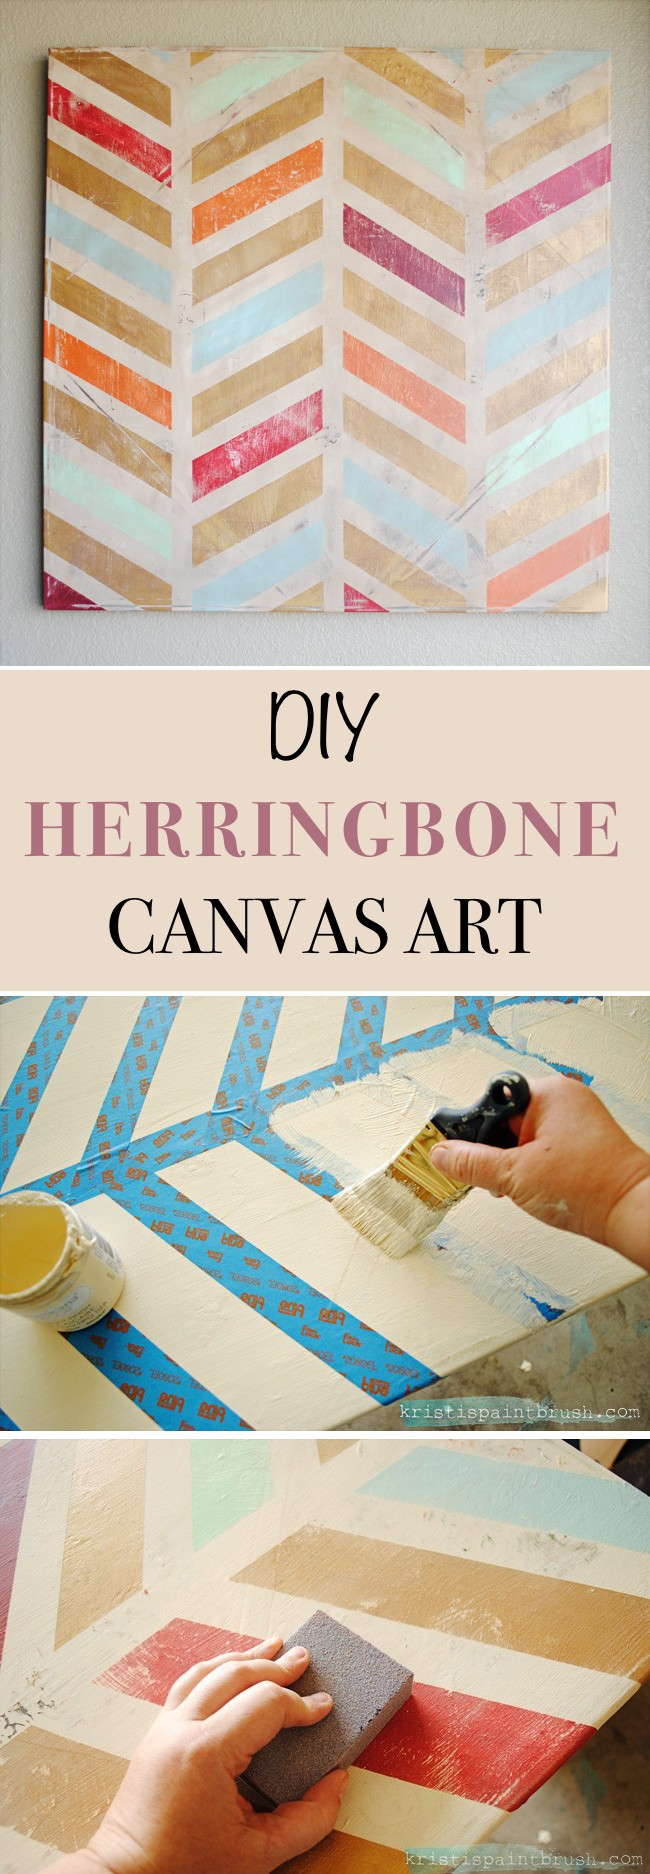 19 Simple DIY Wall Art Ideas For Your Home - Homelovr